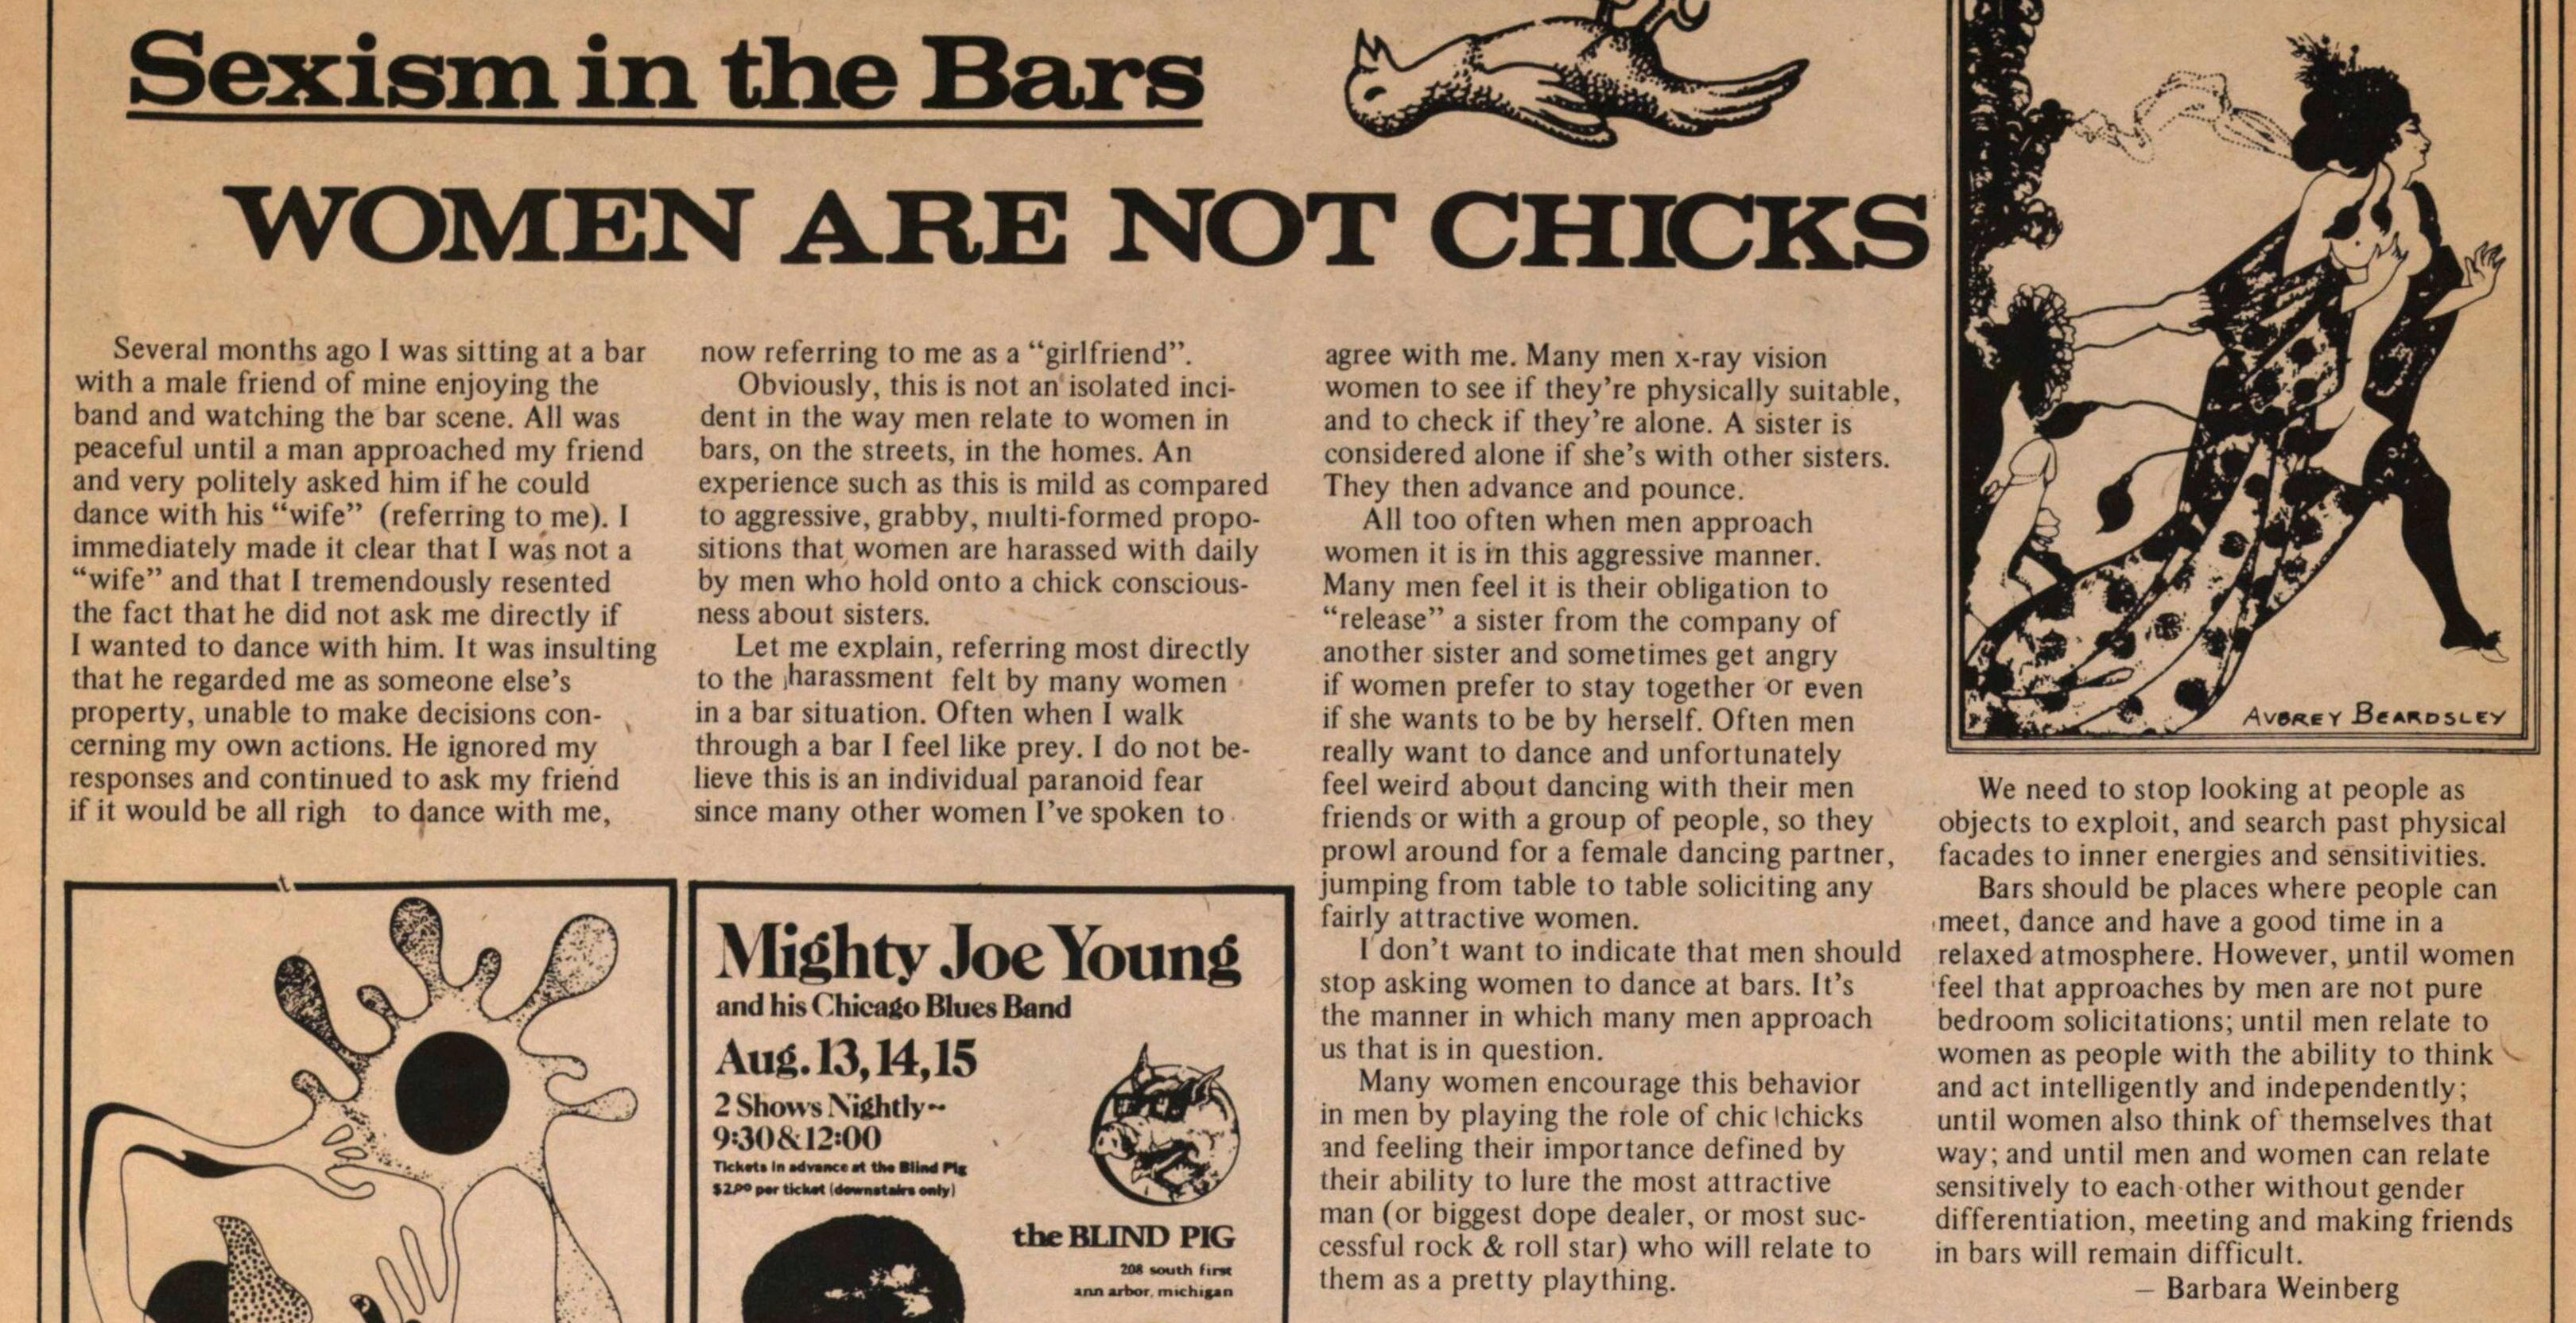 Sexism In The Bars image